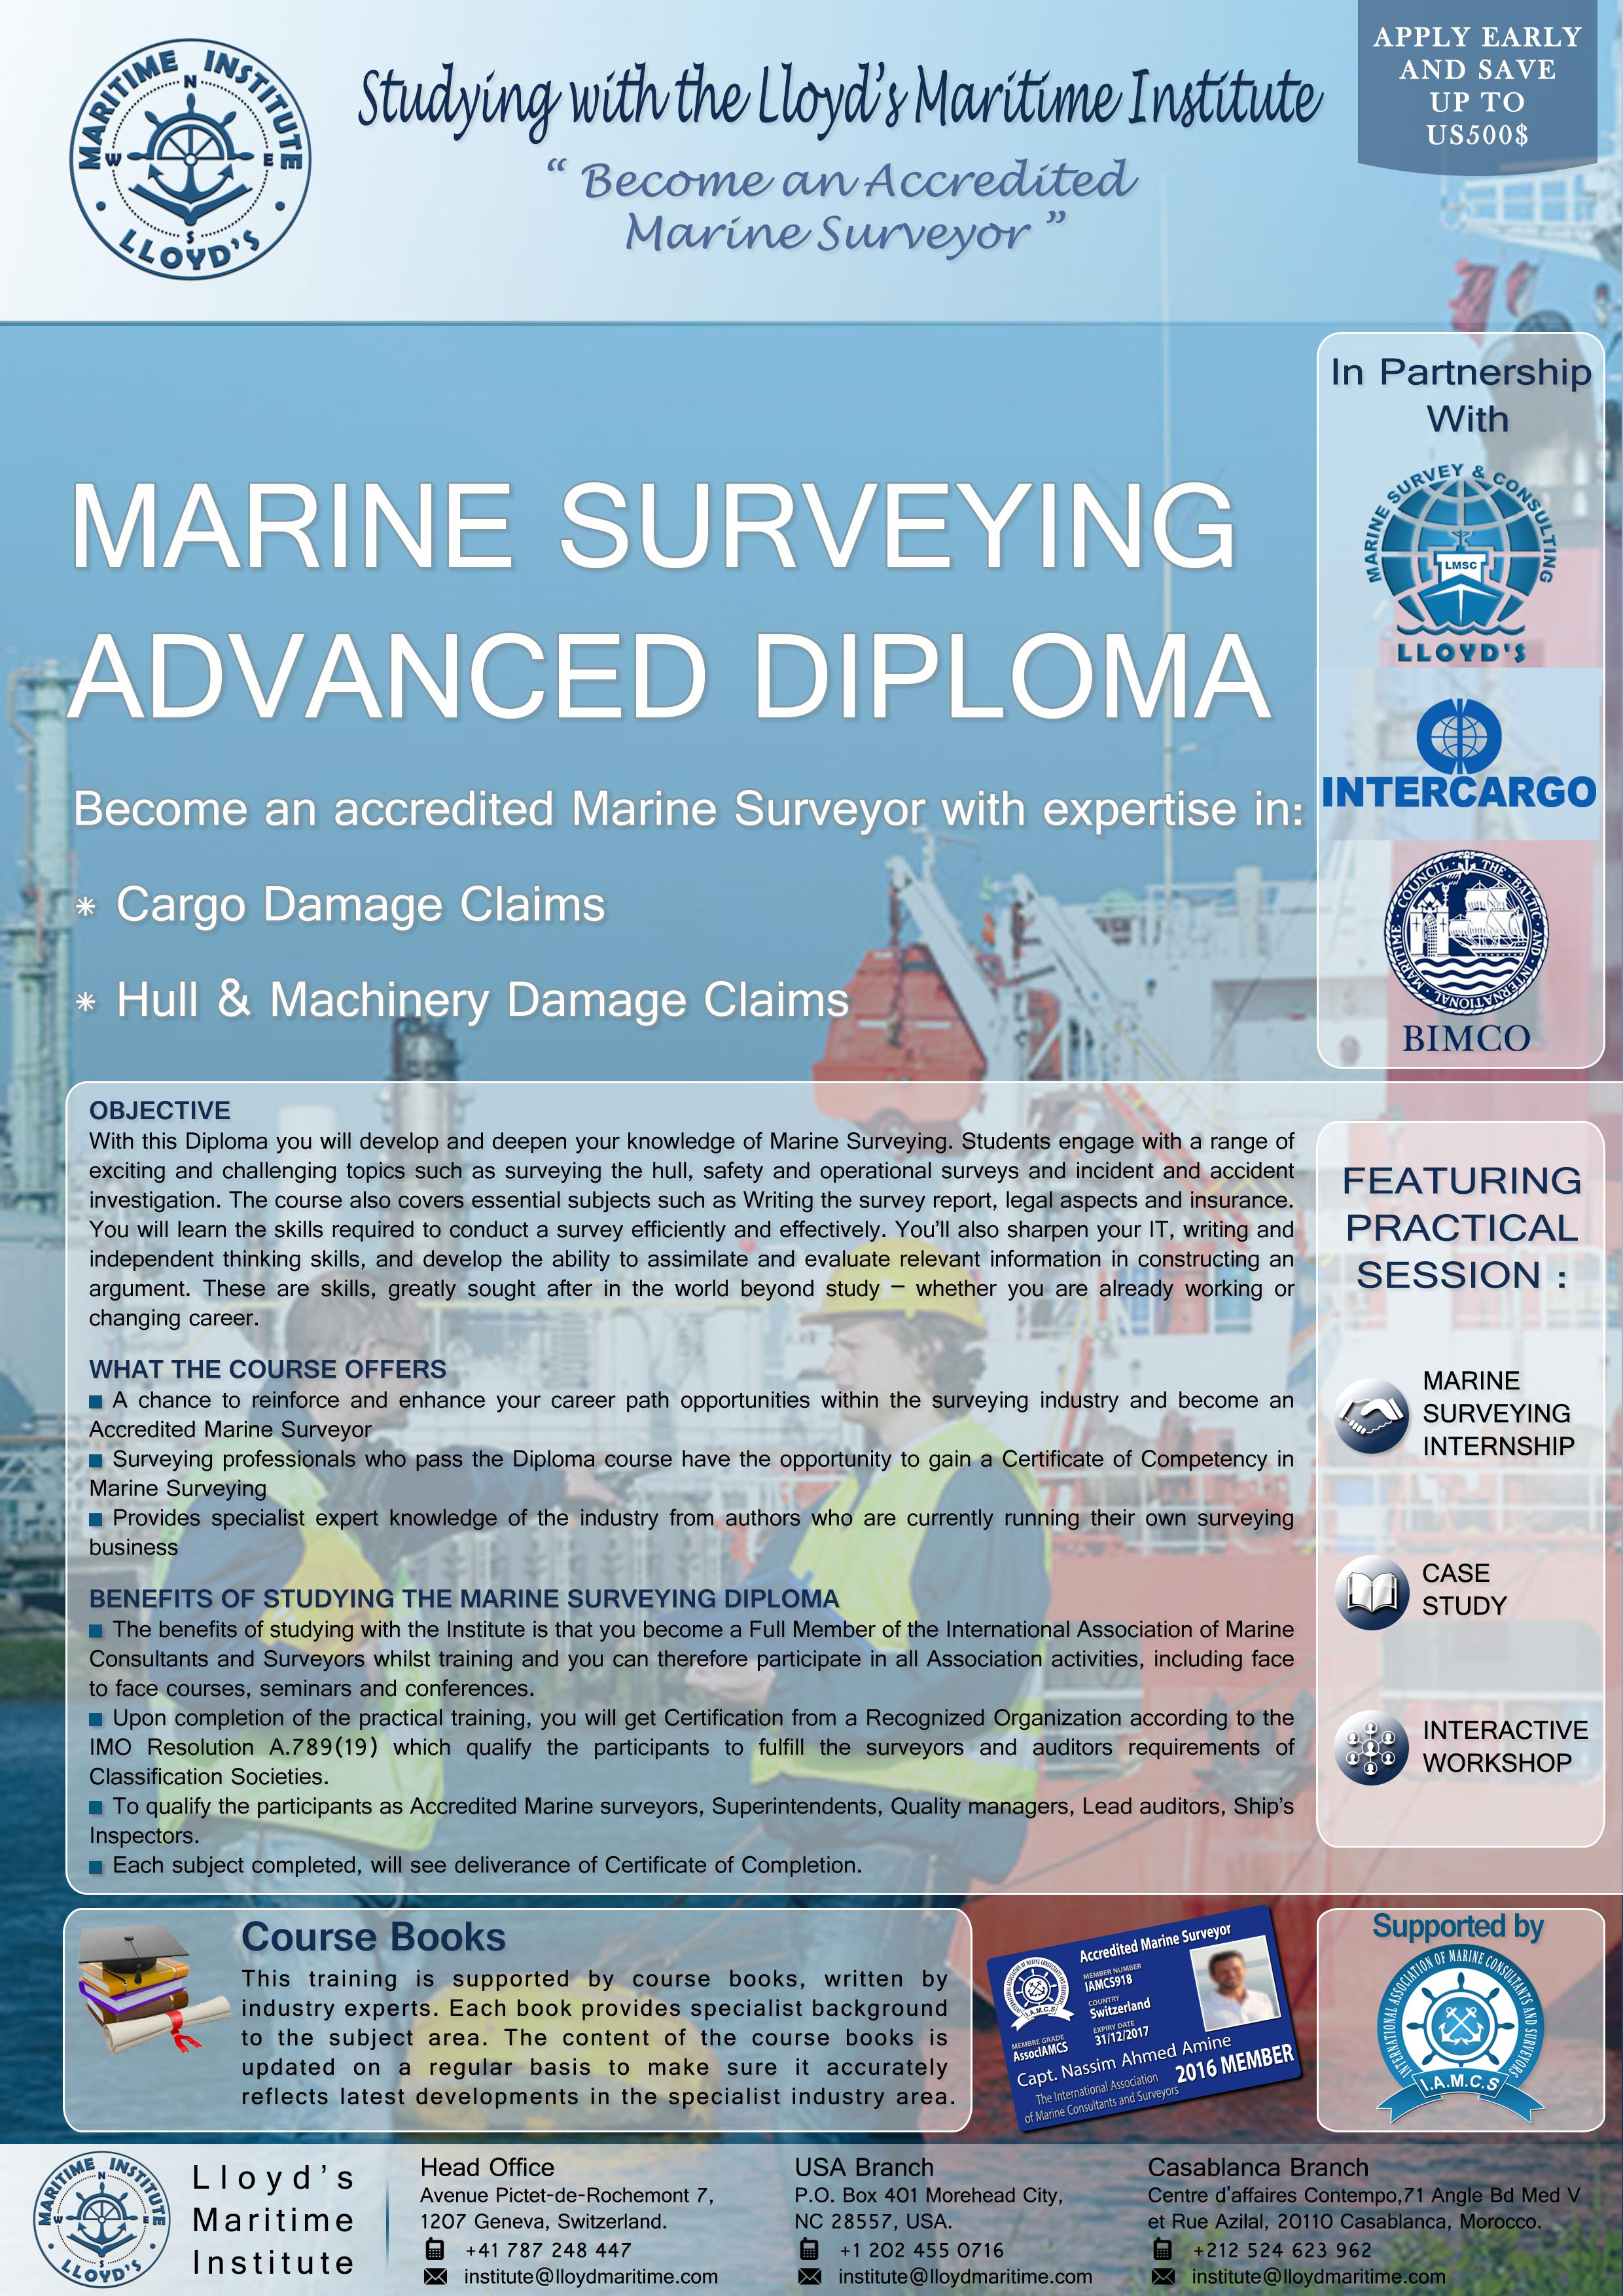 Marine Surveying Advanced Diploma